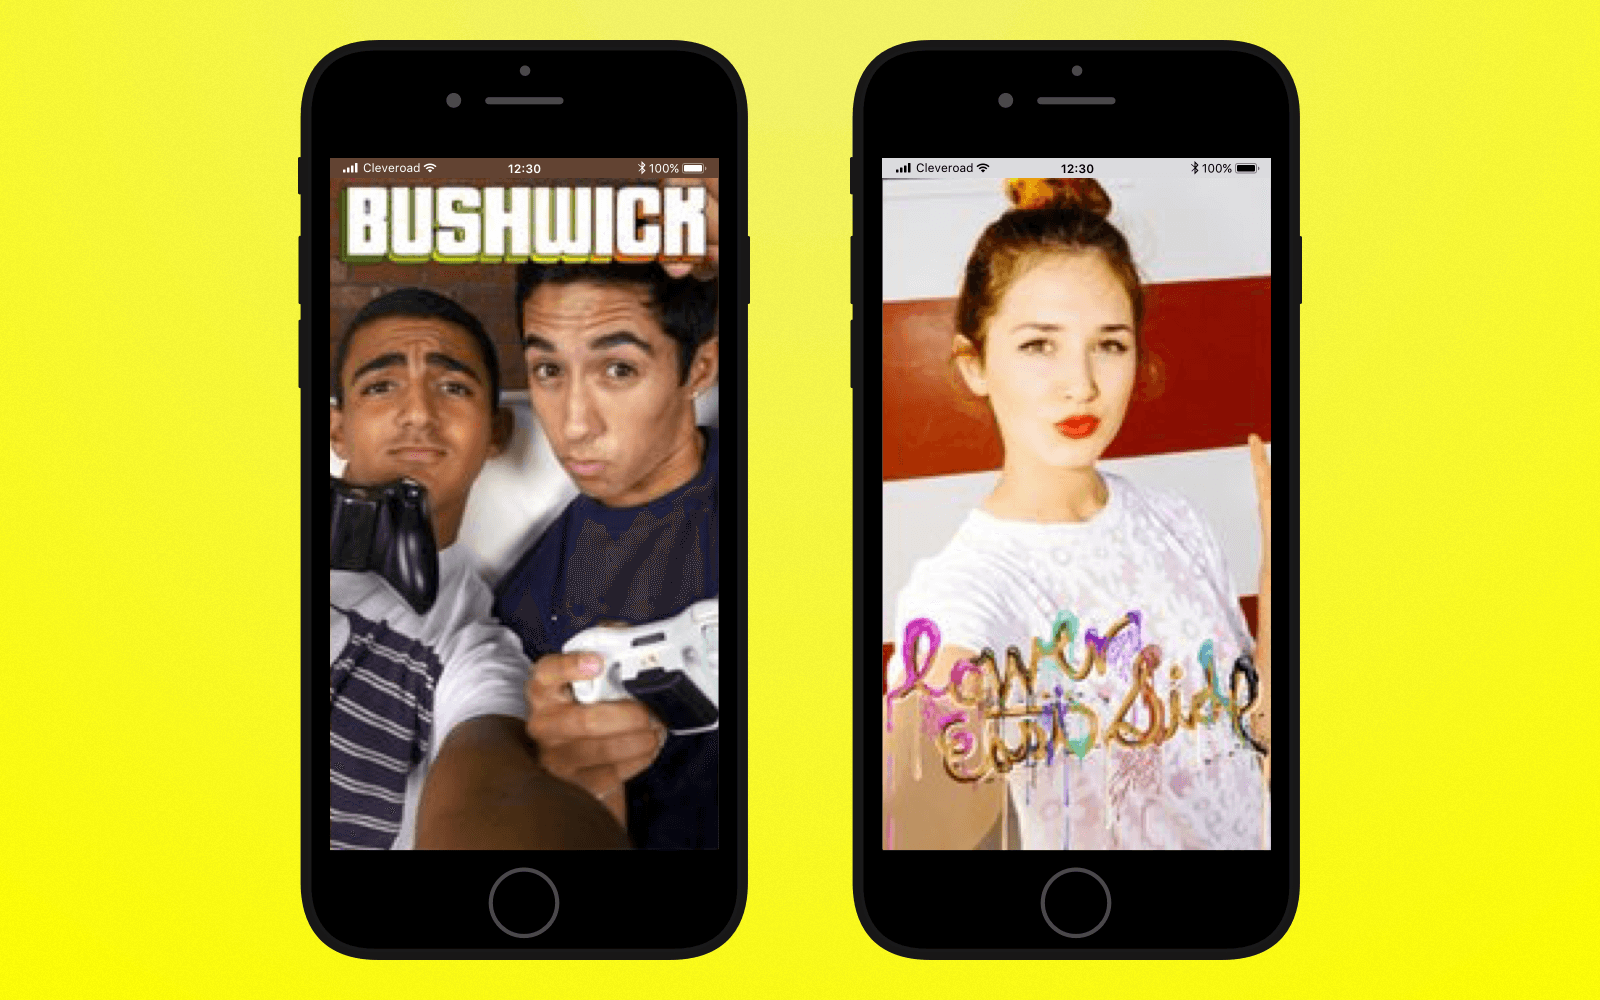 Add geofilter-related features to create an app like Snapchat